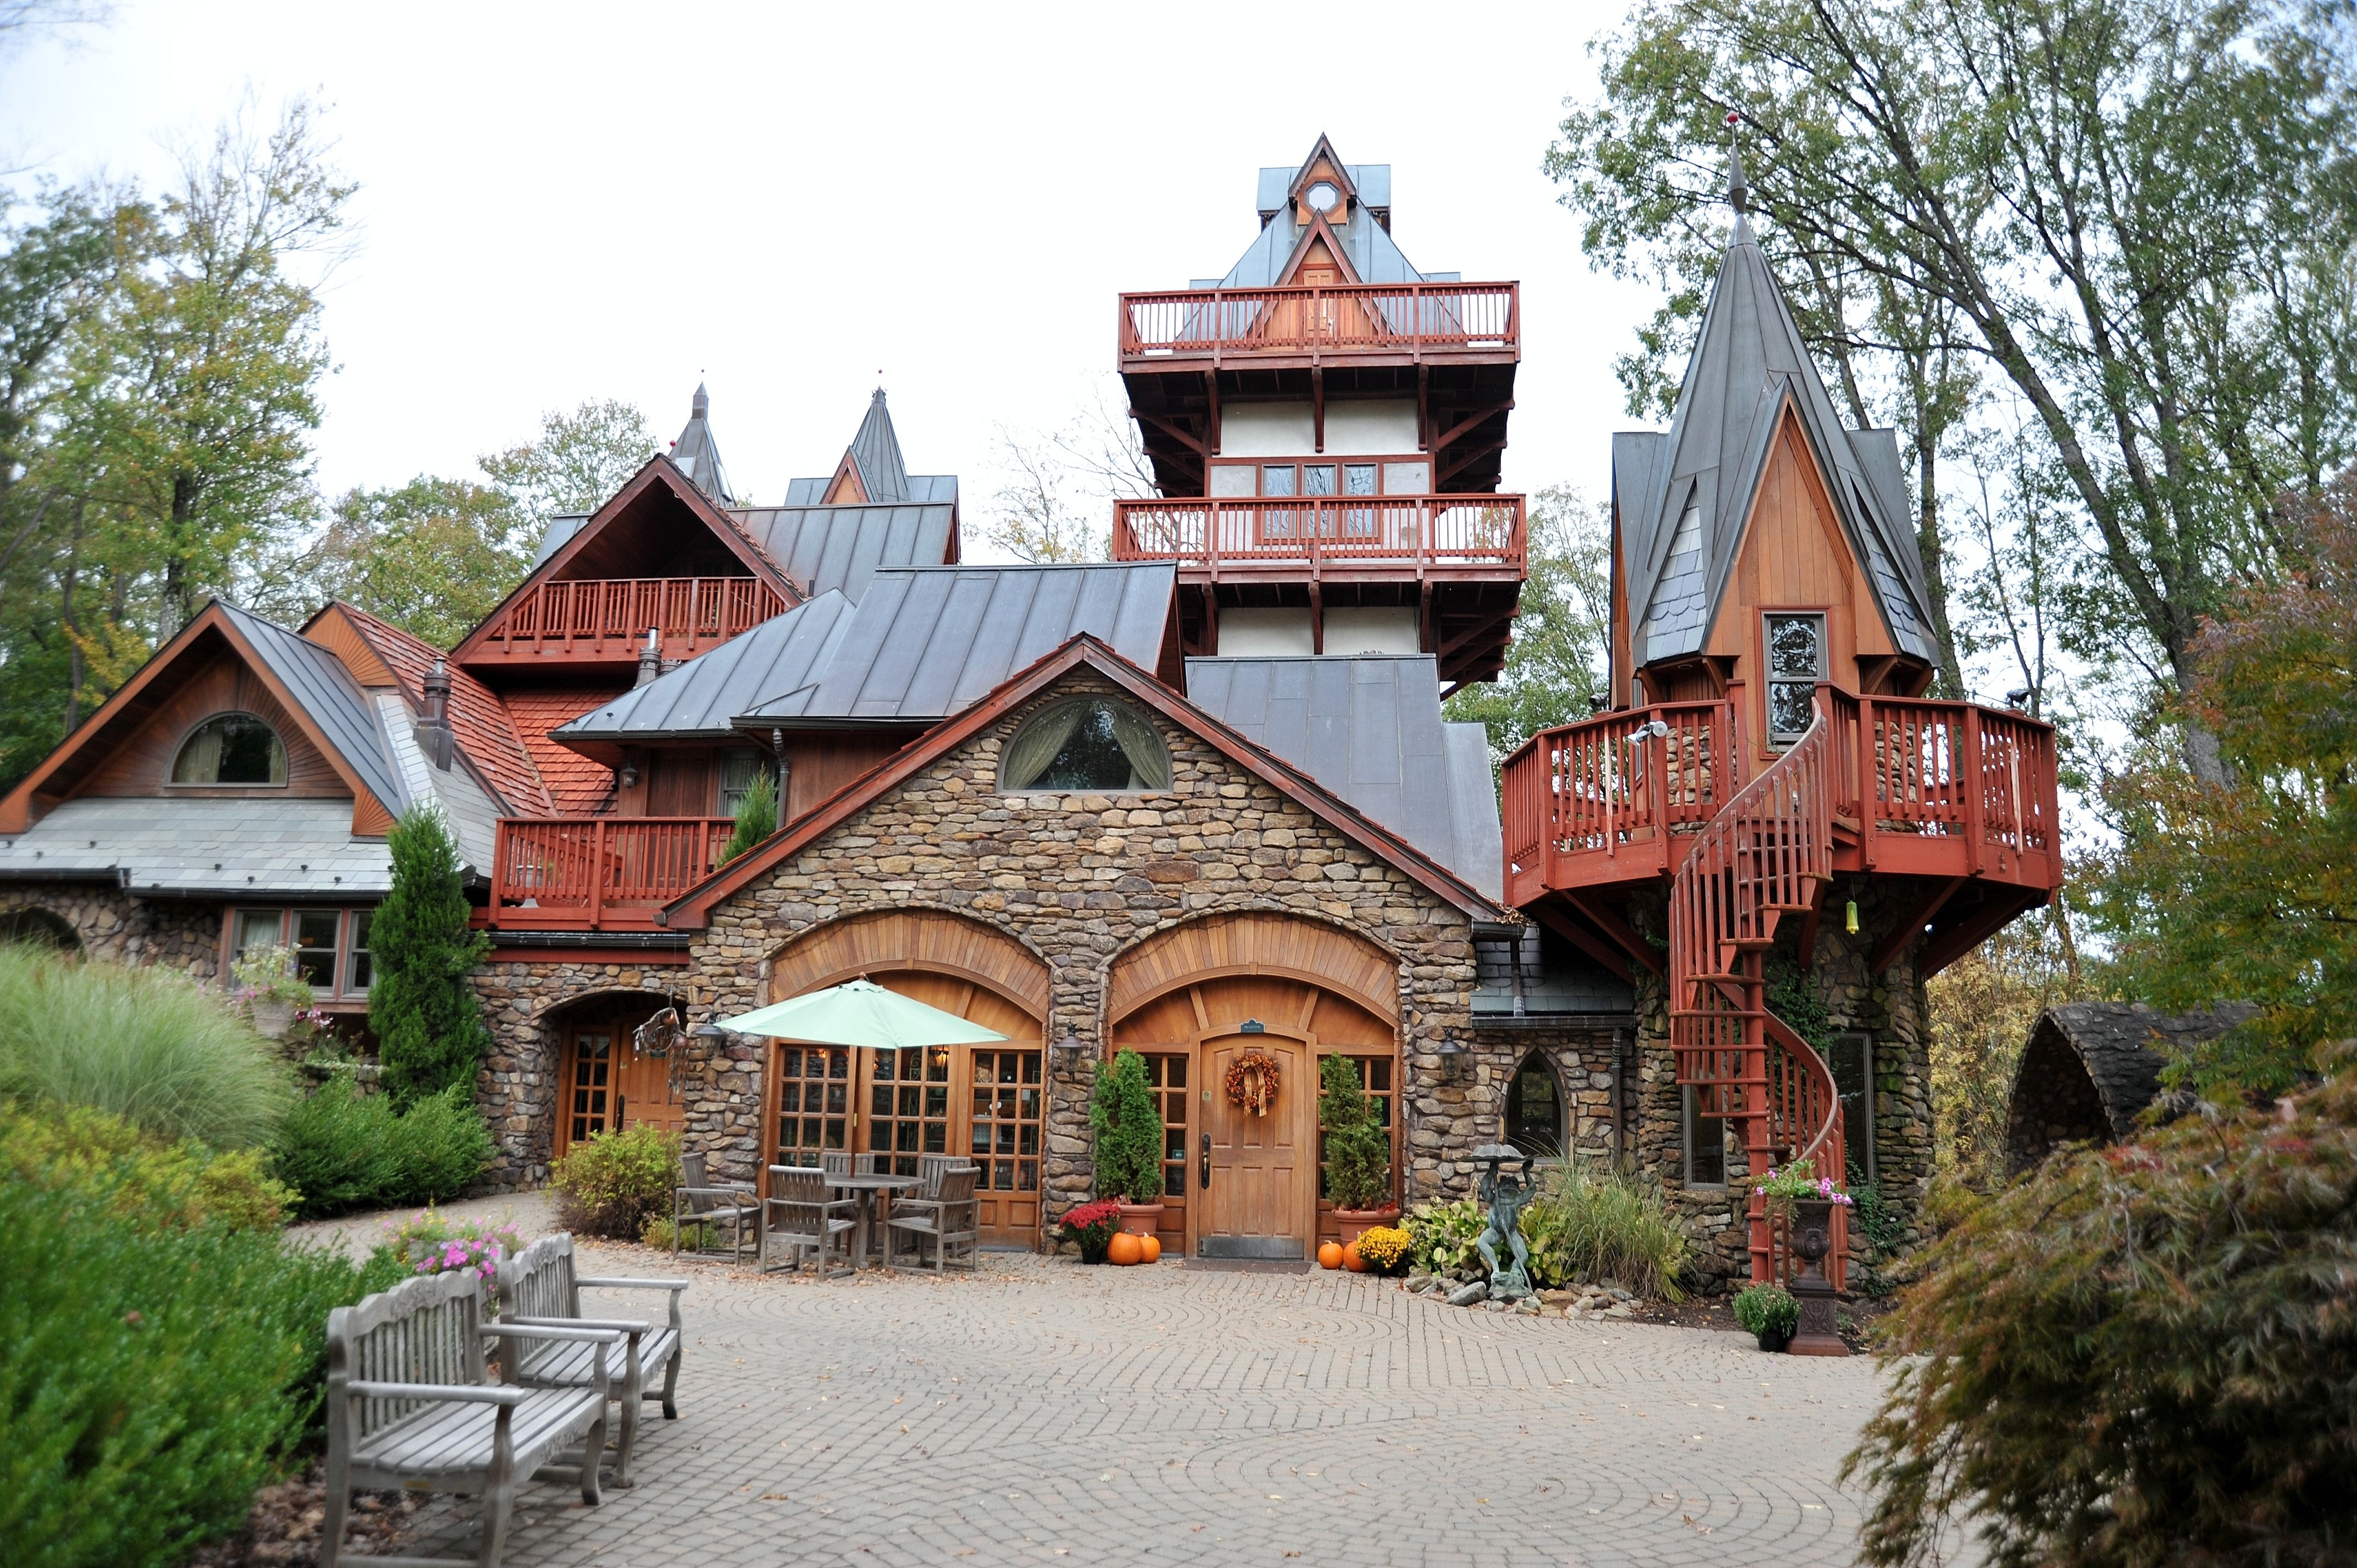 Bed and breakfast near Mohican State Park Ohio Ohio